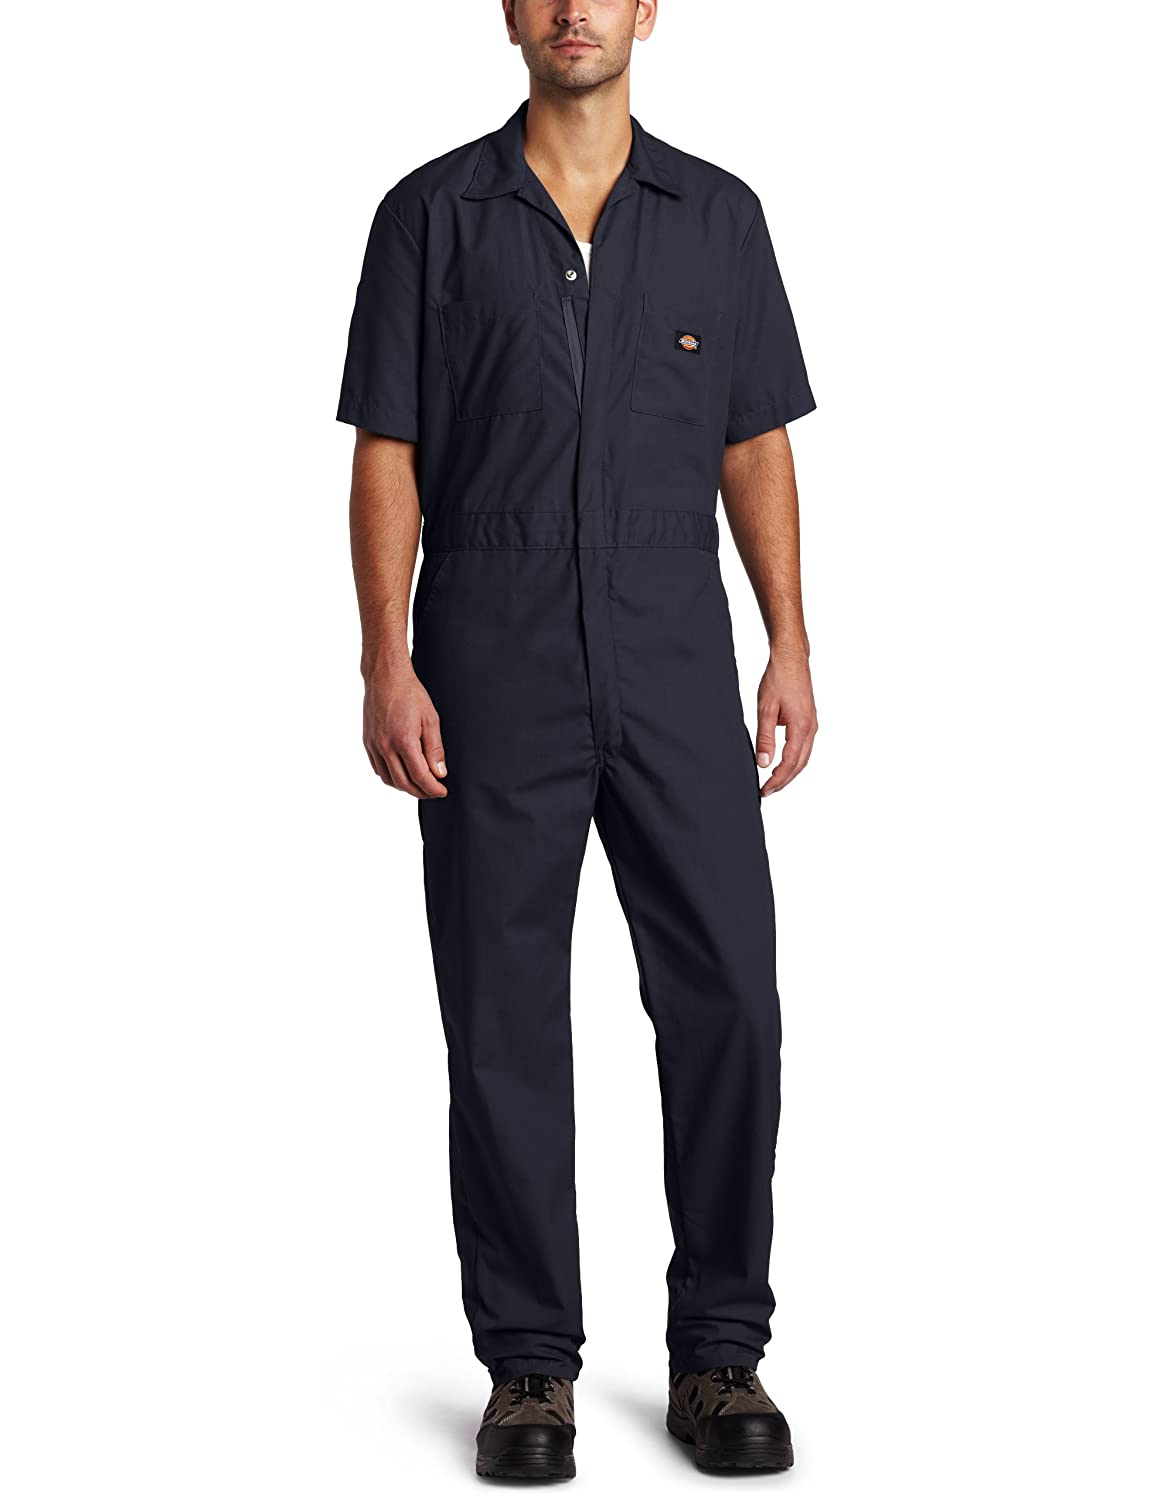 Men's Vintage Workwear Inspired Clothing Short-Sleeve Coverall  AT vintagedancer.com